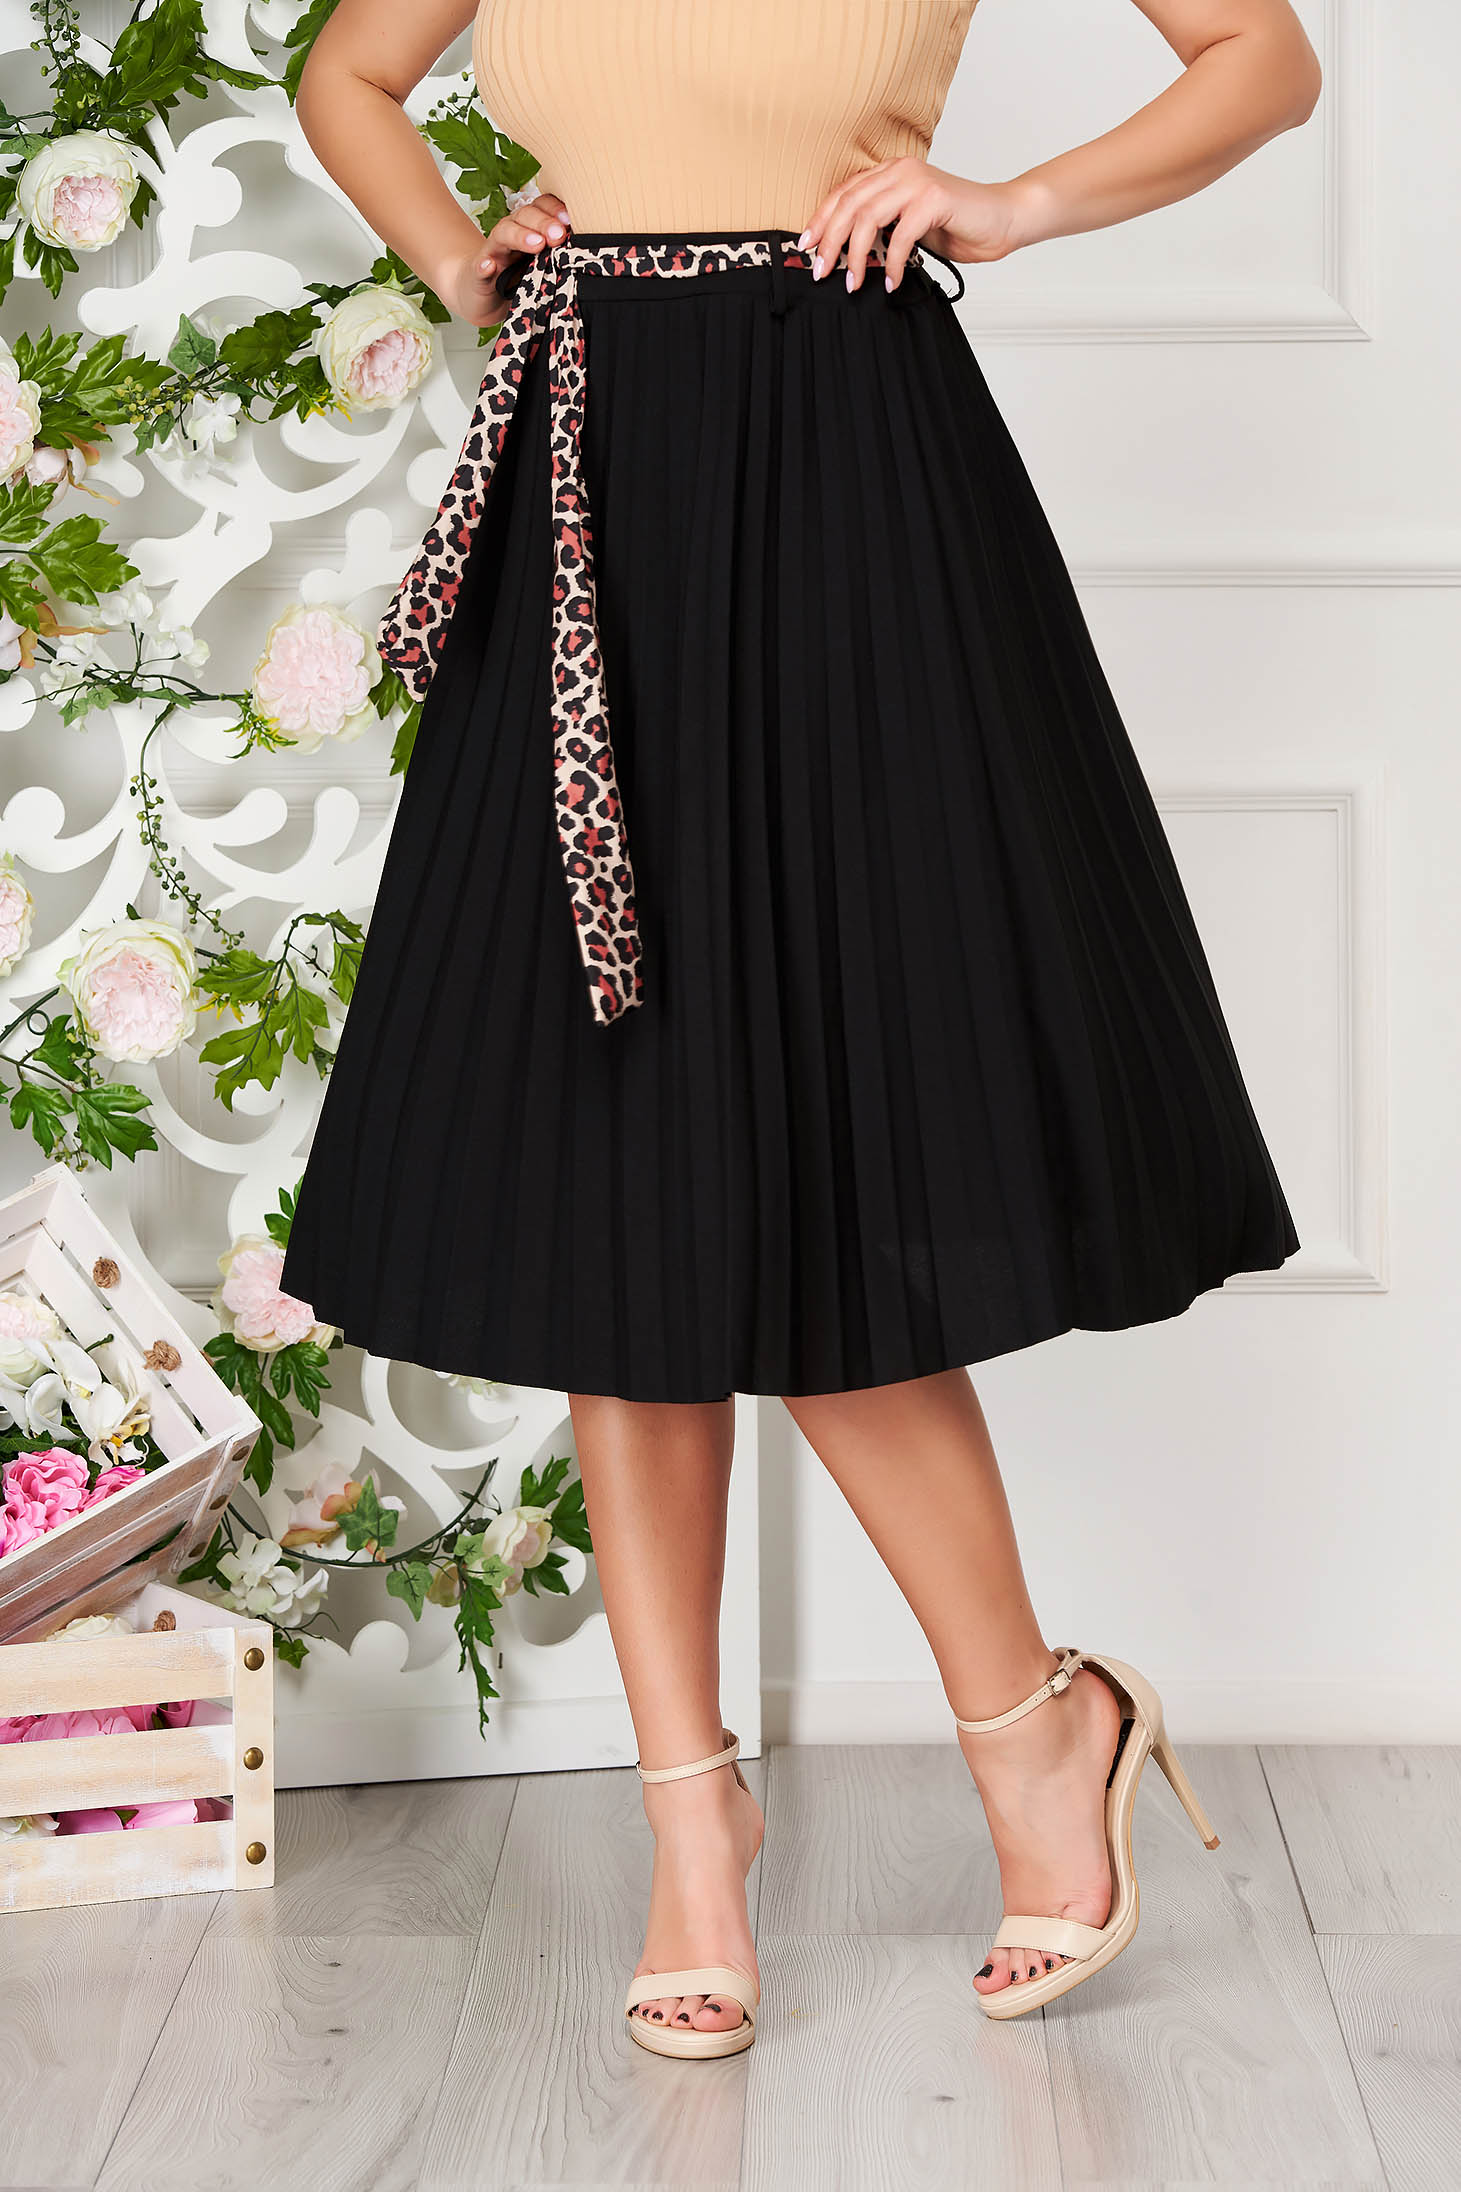 Black casual midi cloche skirt accessorized with belt pleats of material